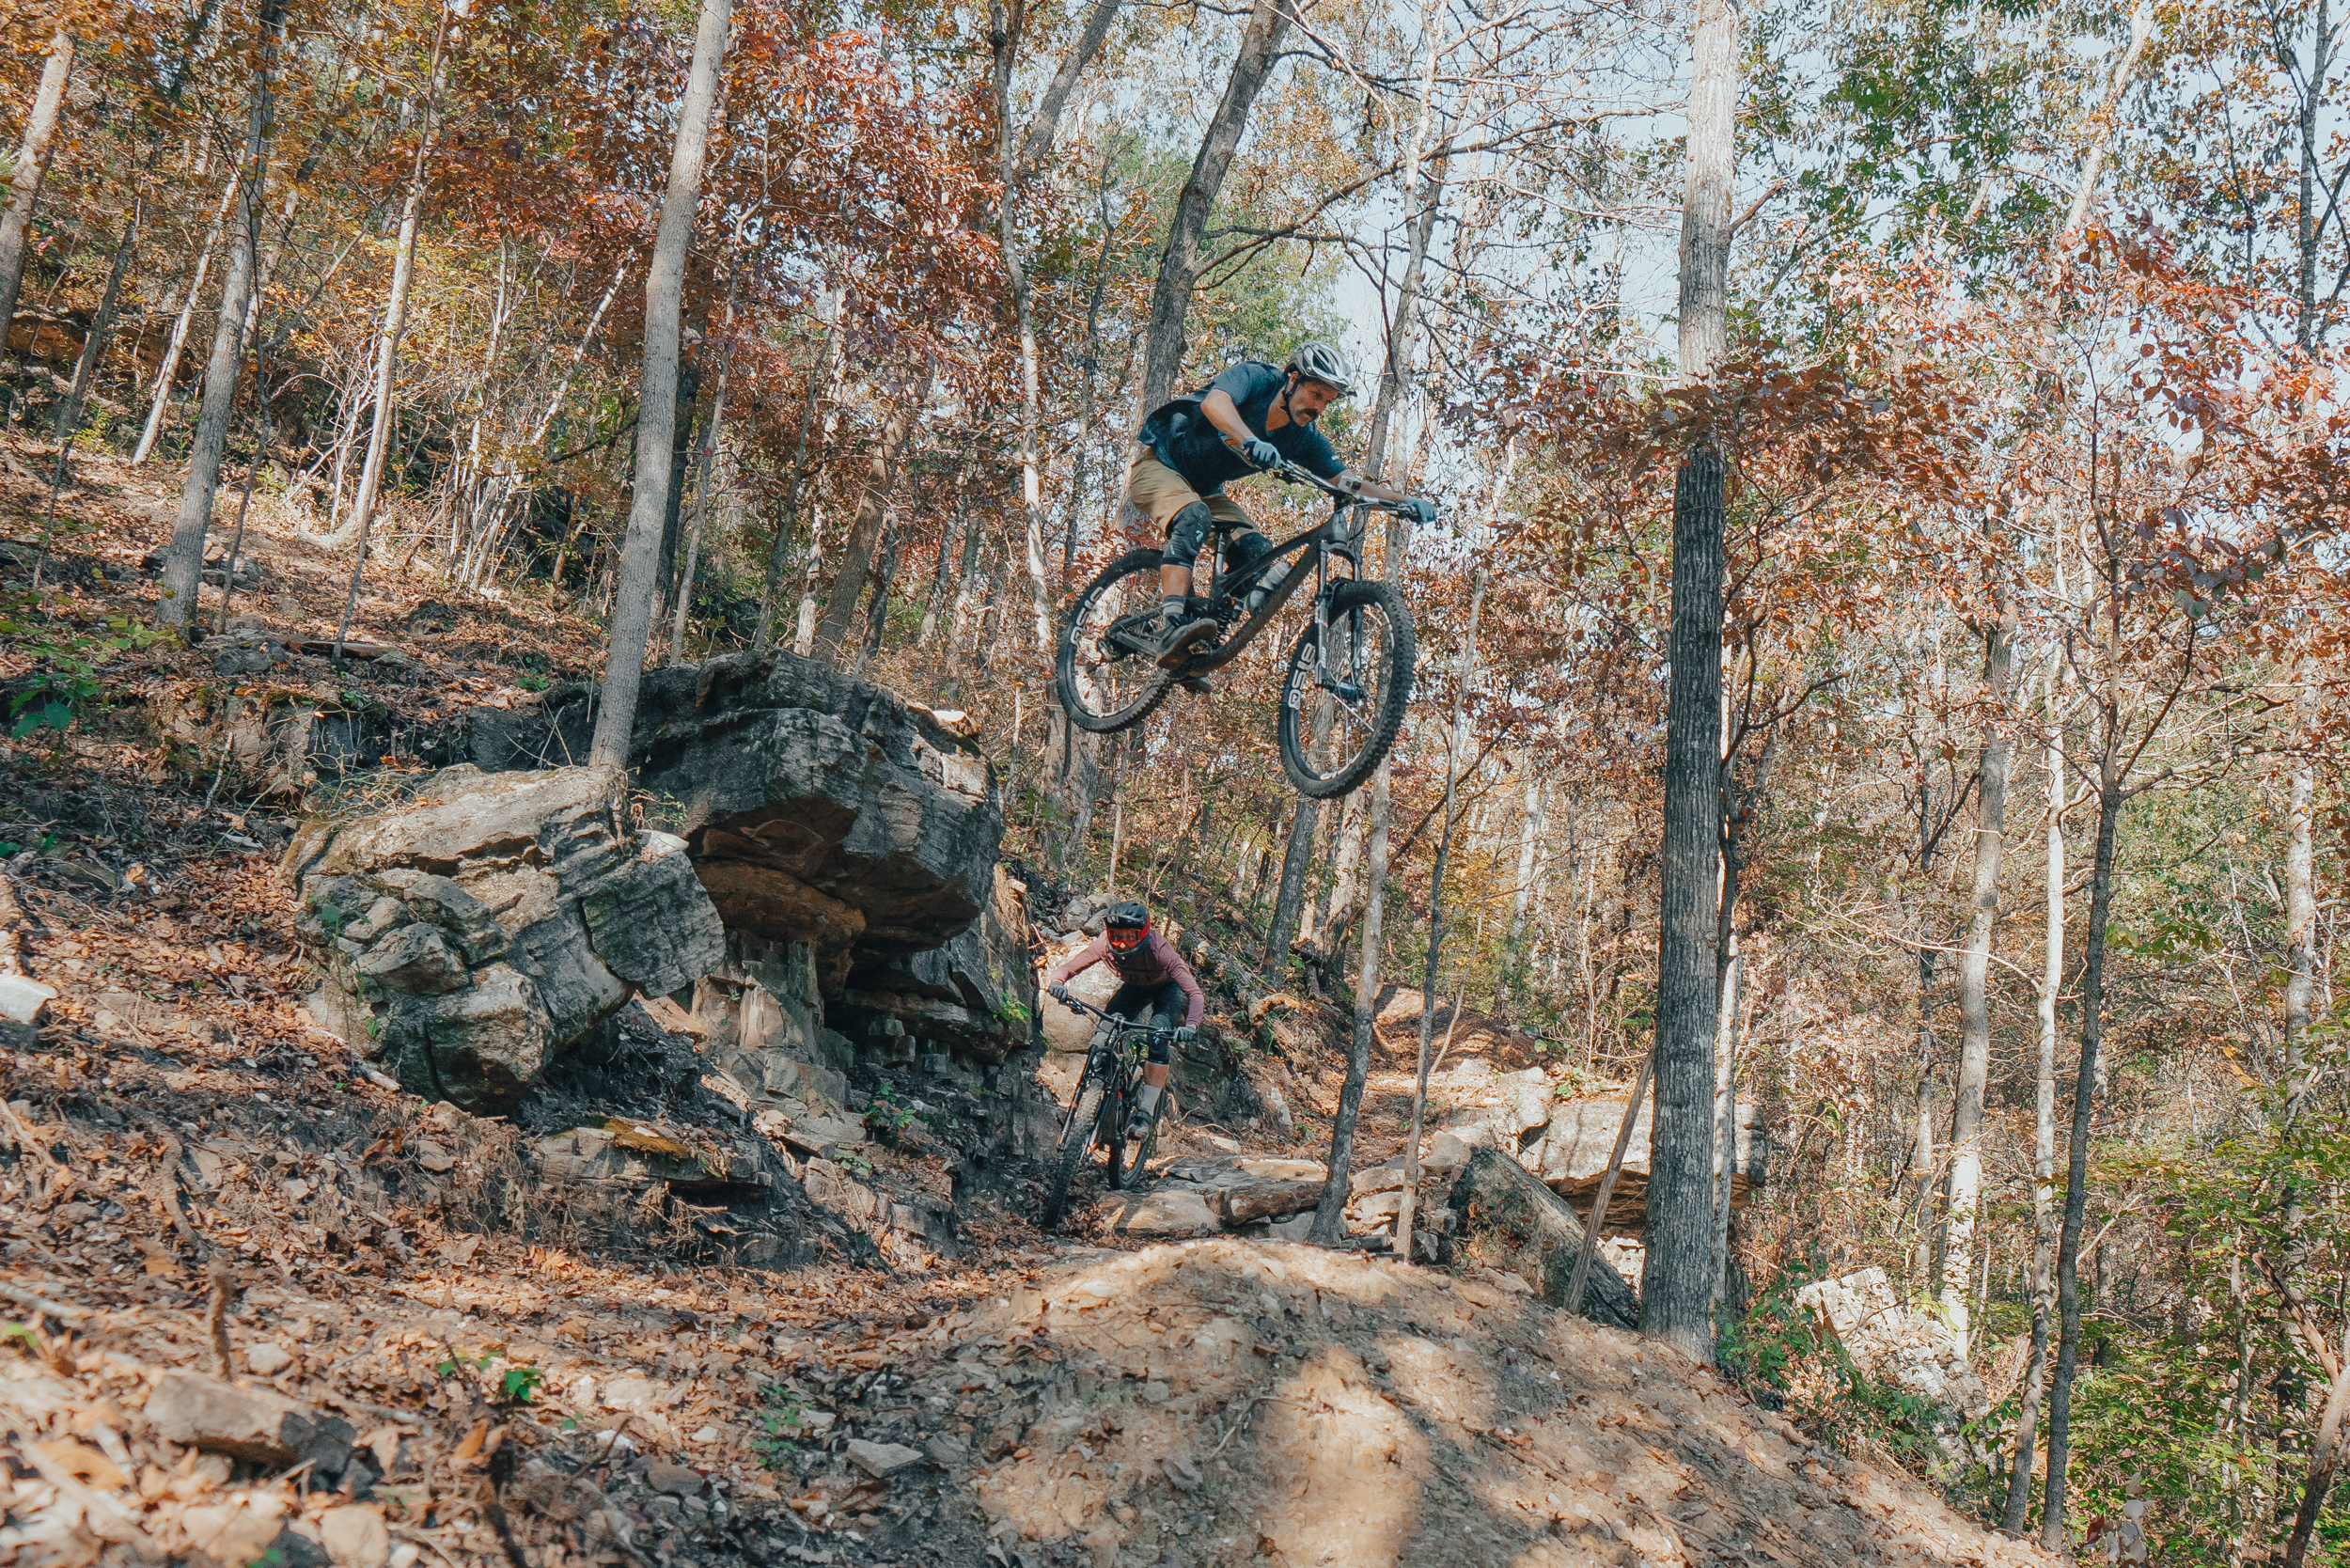 Inside the new BOC Ponca Downhill MTB Trails